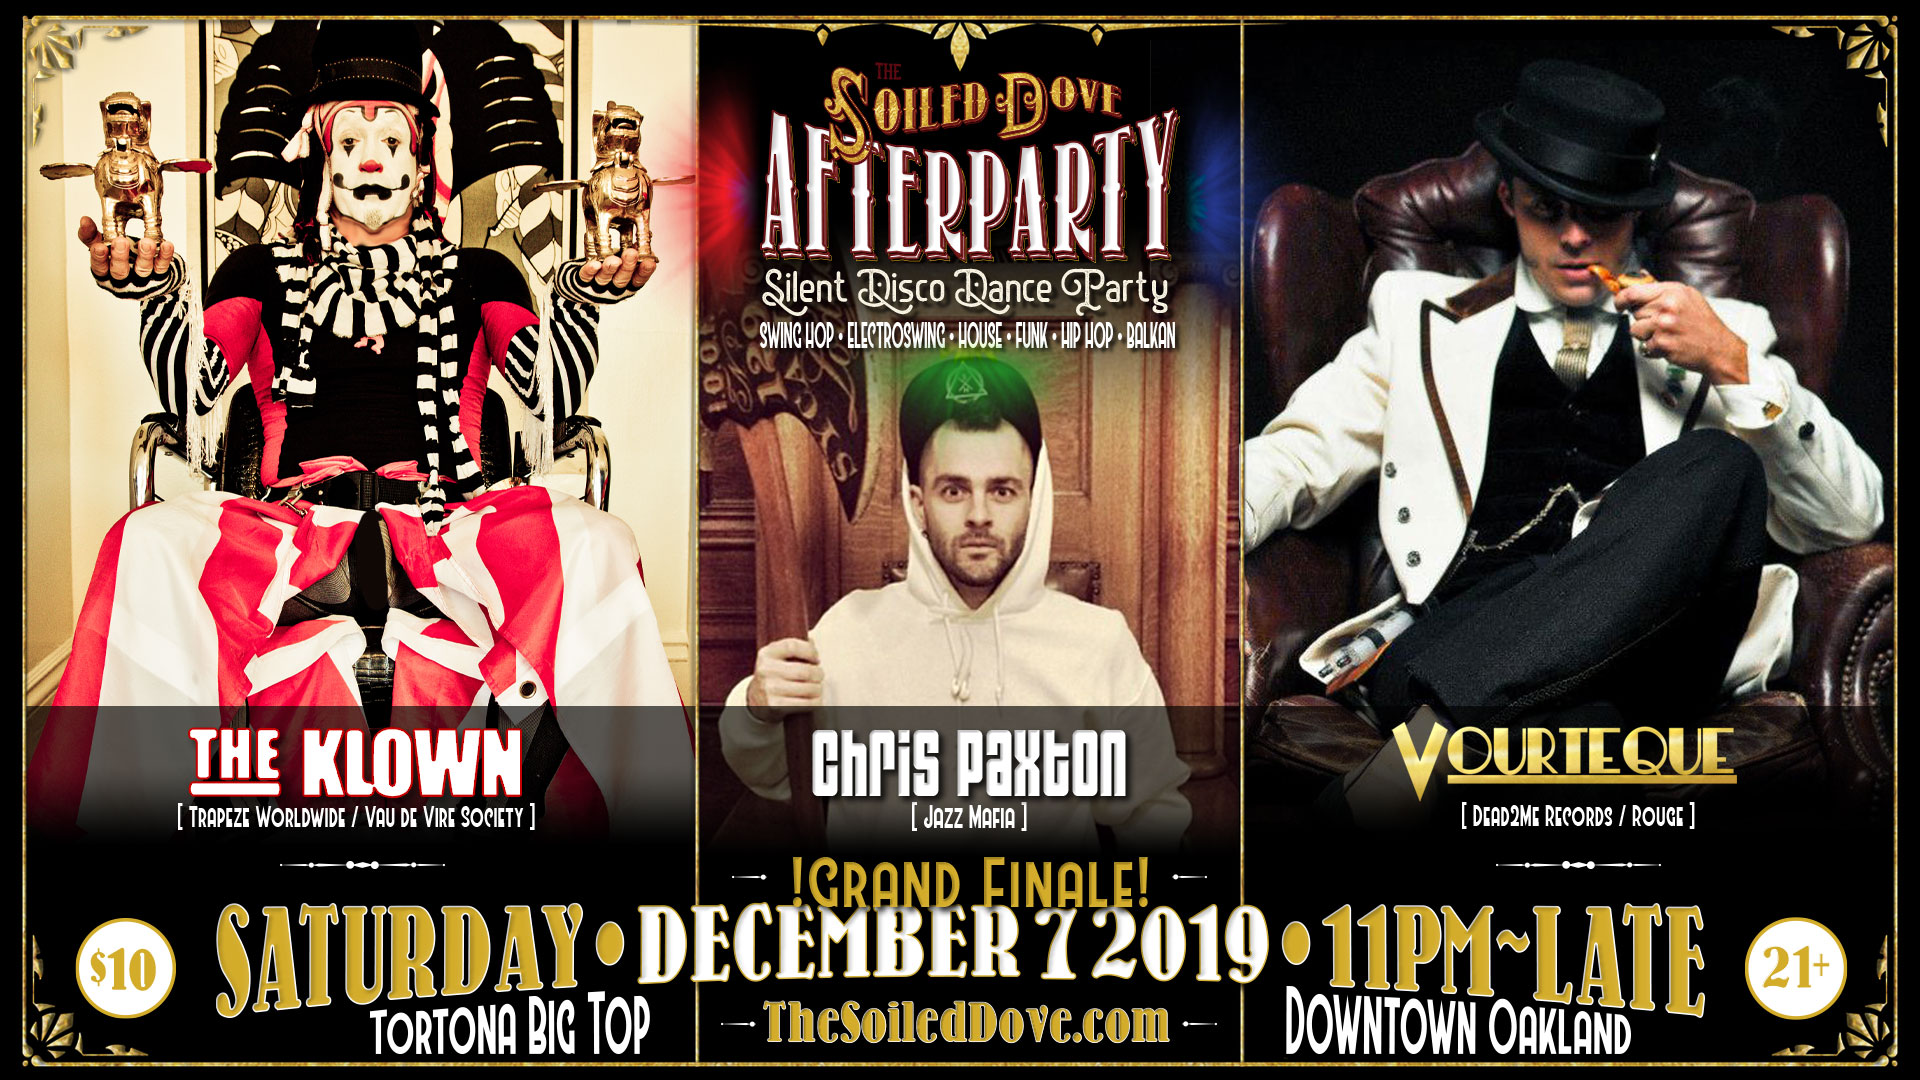 The Klown DJ residency at The Soiled Dove Silent Disco Afterparty - Saturday, December 7, 2019 - Tortona Big Top in Oakland, California